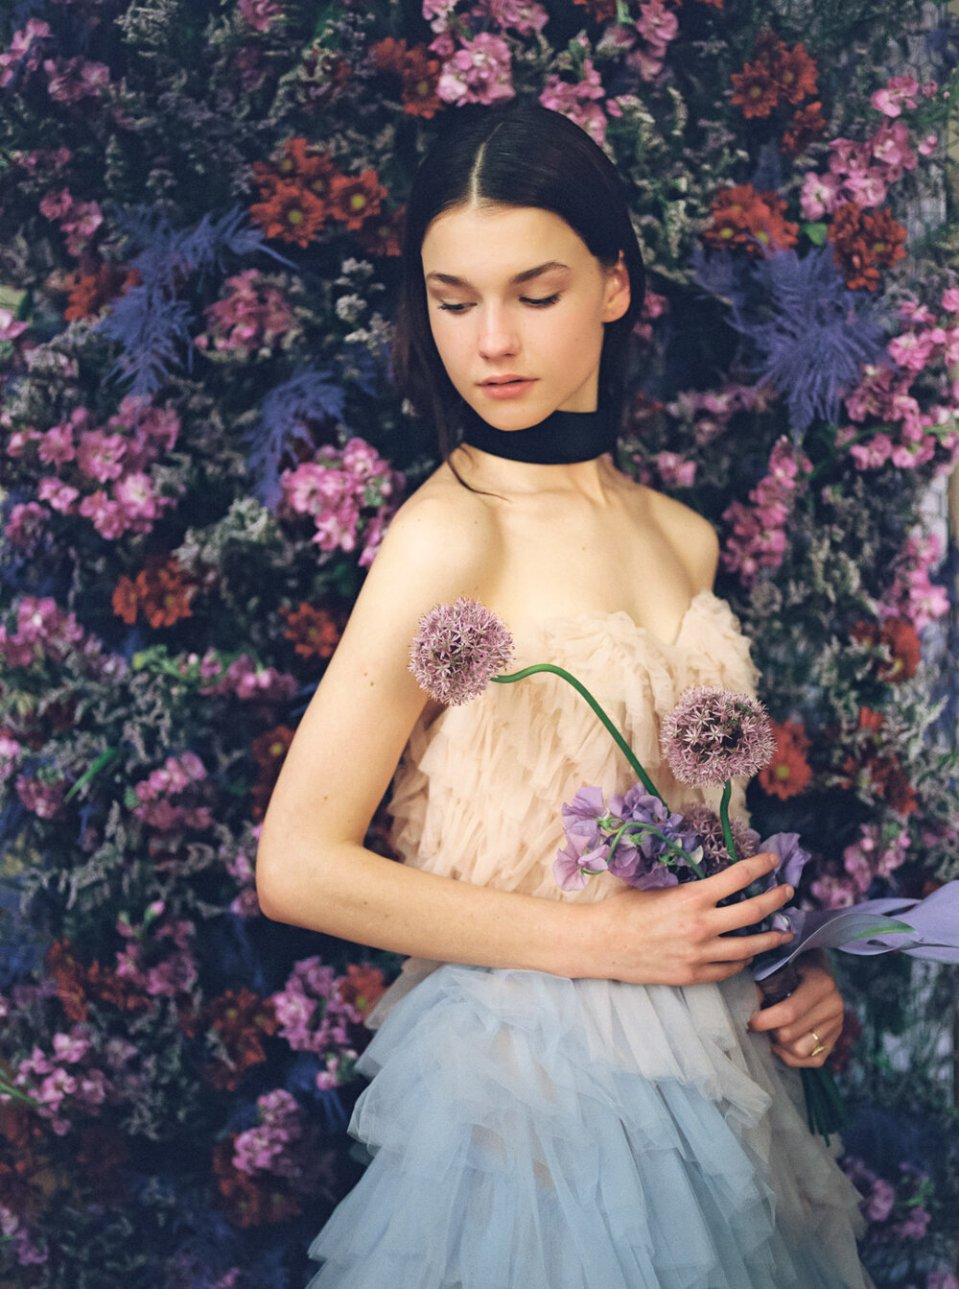 Colorful & Artistic Fine Art Photography at the Noelle in Nashville Tennesee-10.jpg